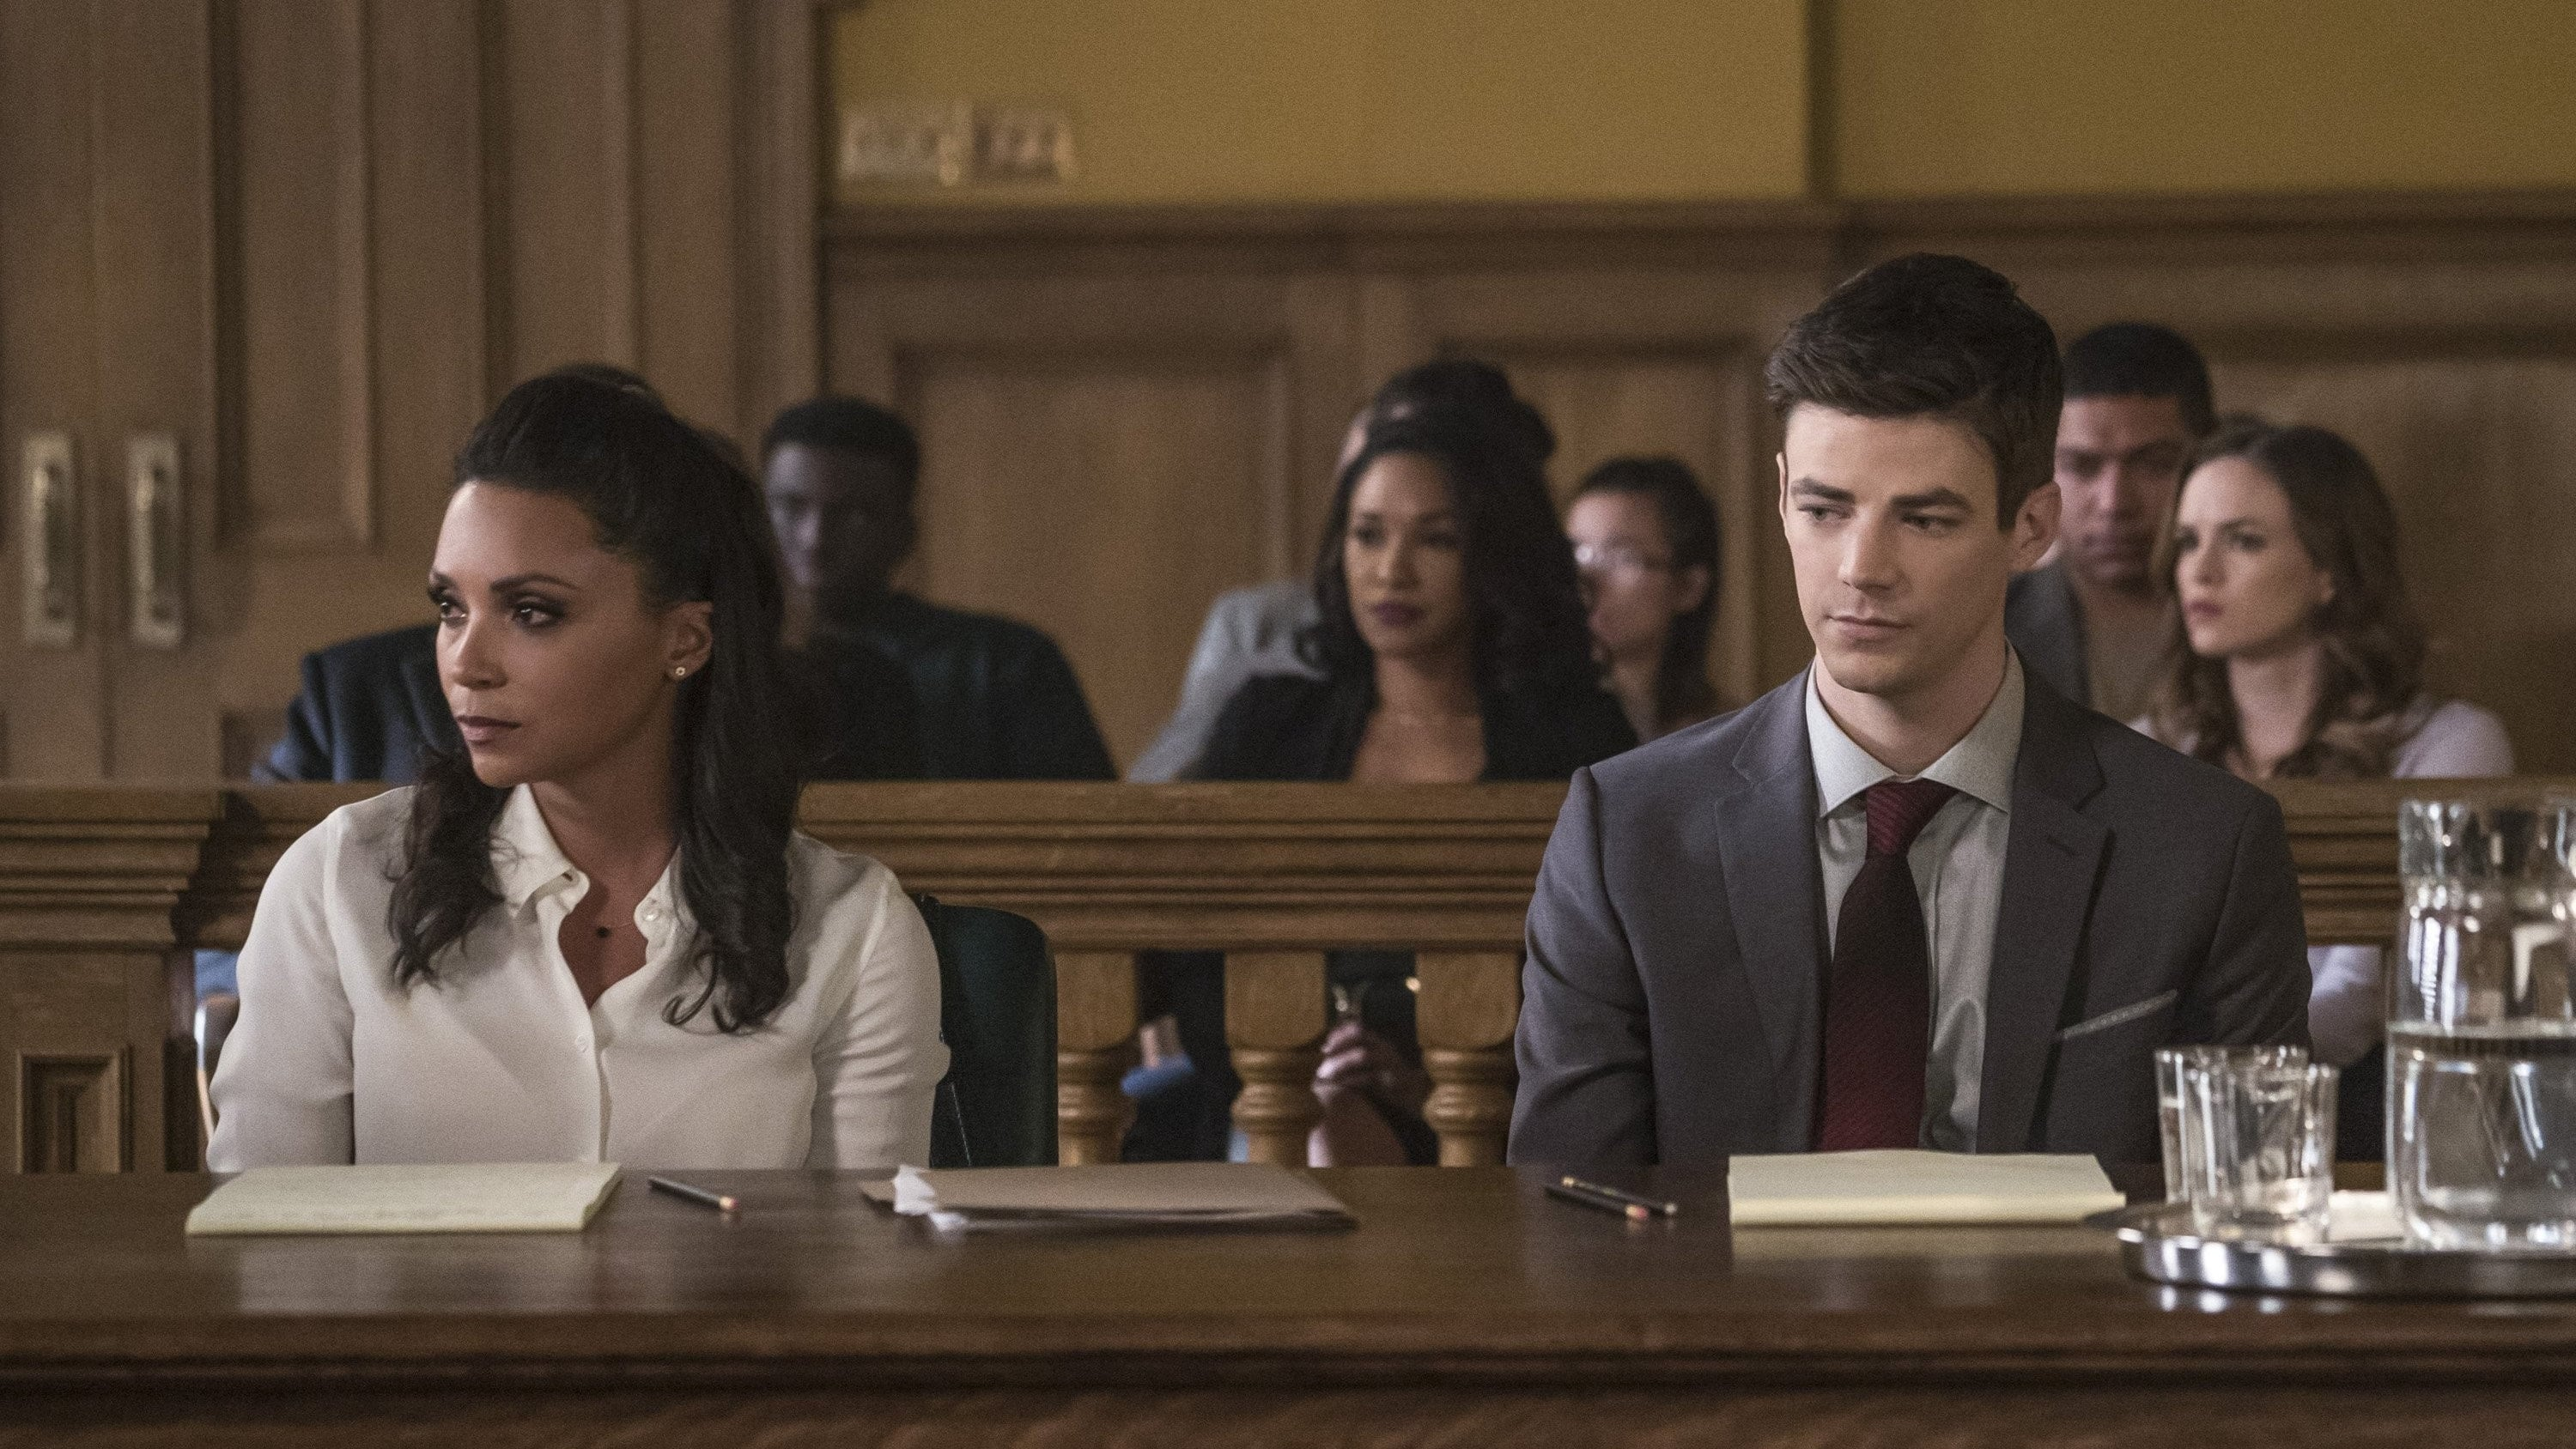 The Flash - Season 4 Episode 10 : The Trial of The Flash